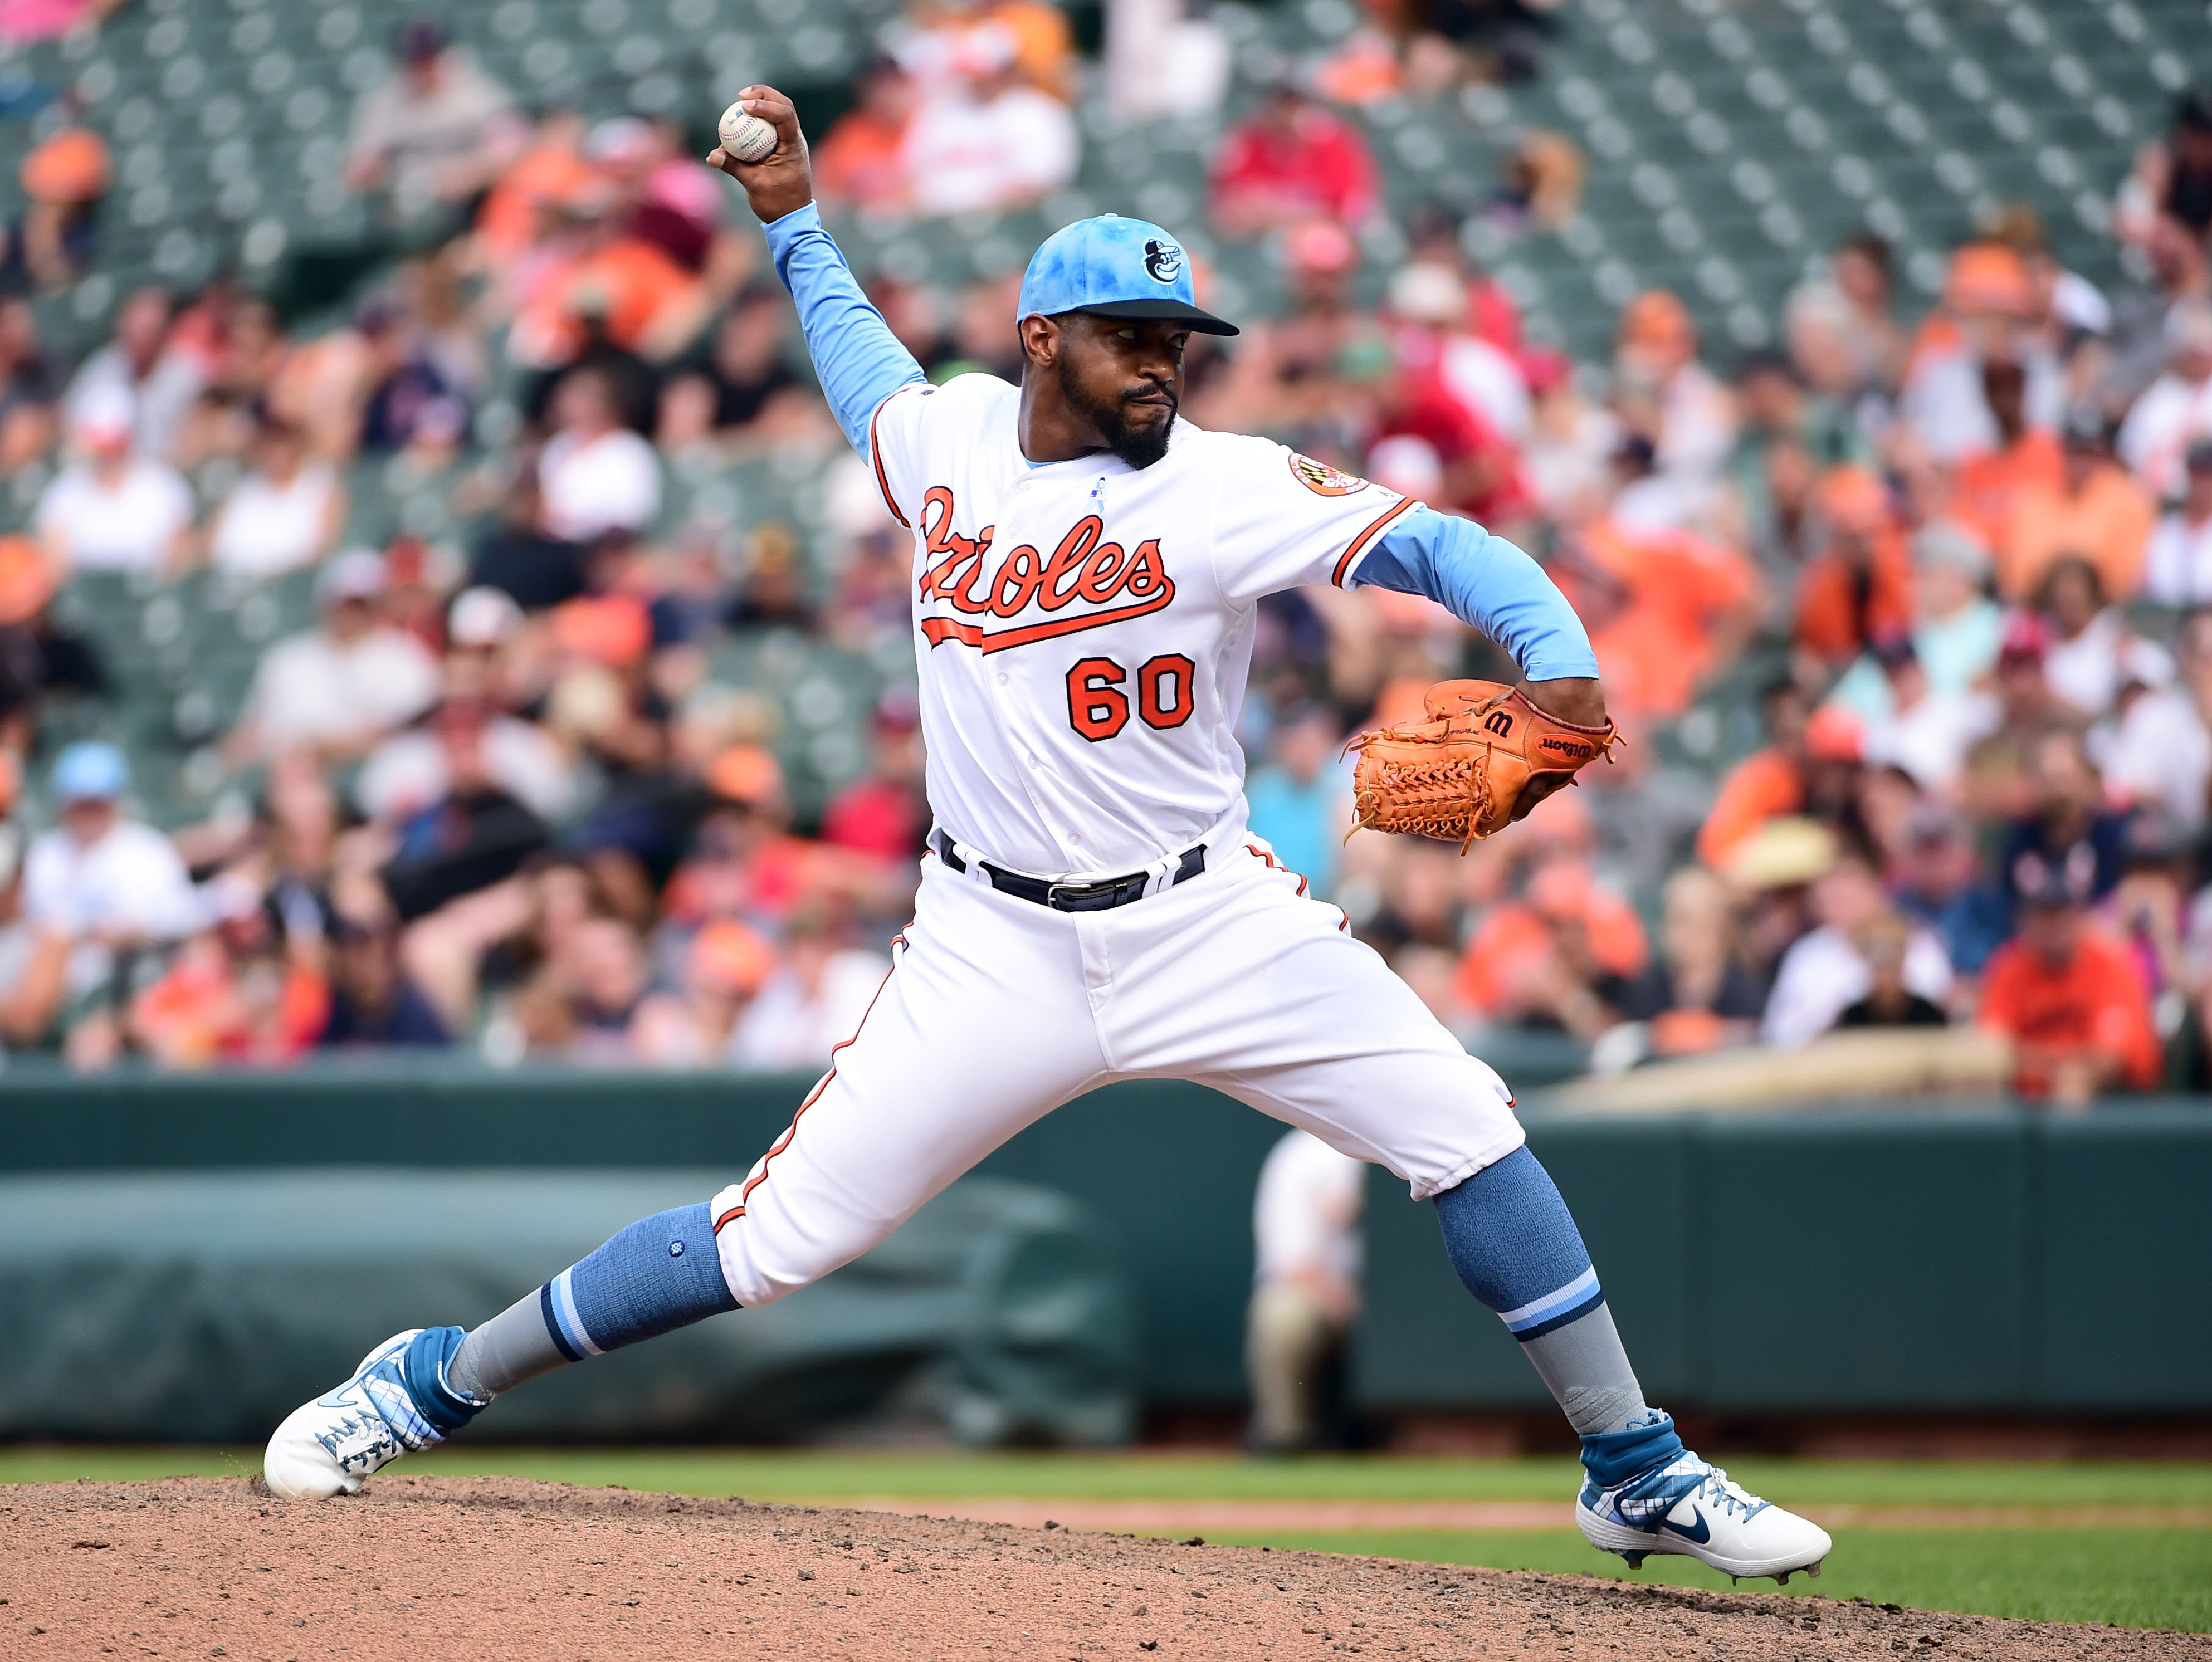 Phillies rumors indicate team interested in Mychal Givens